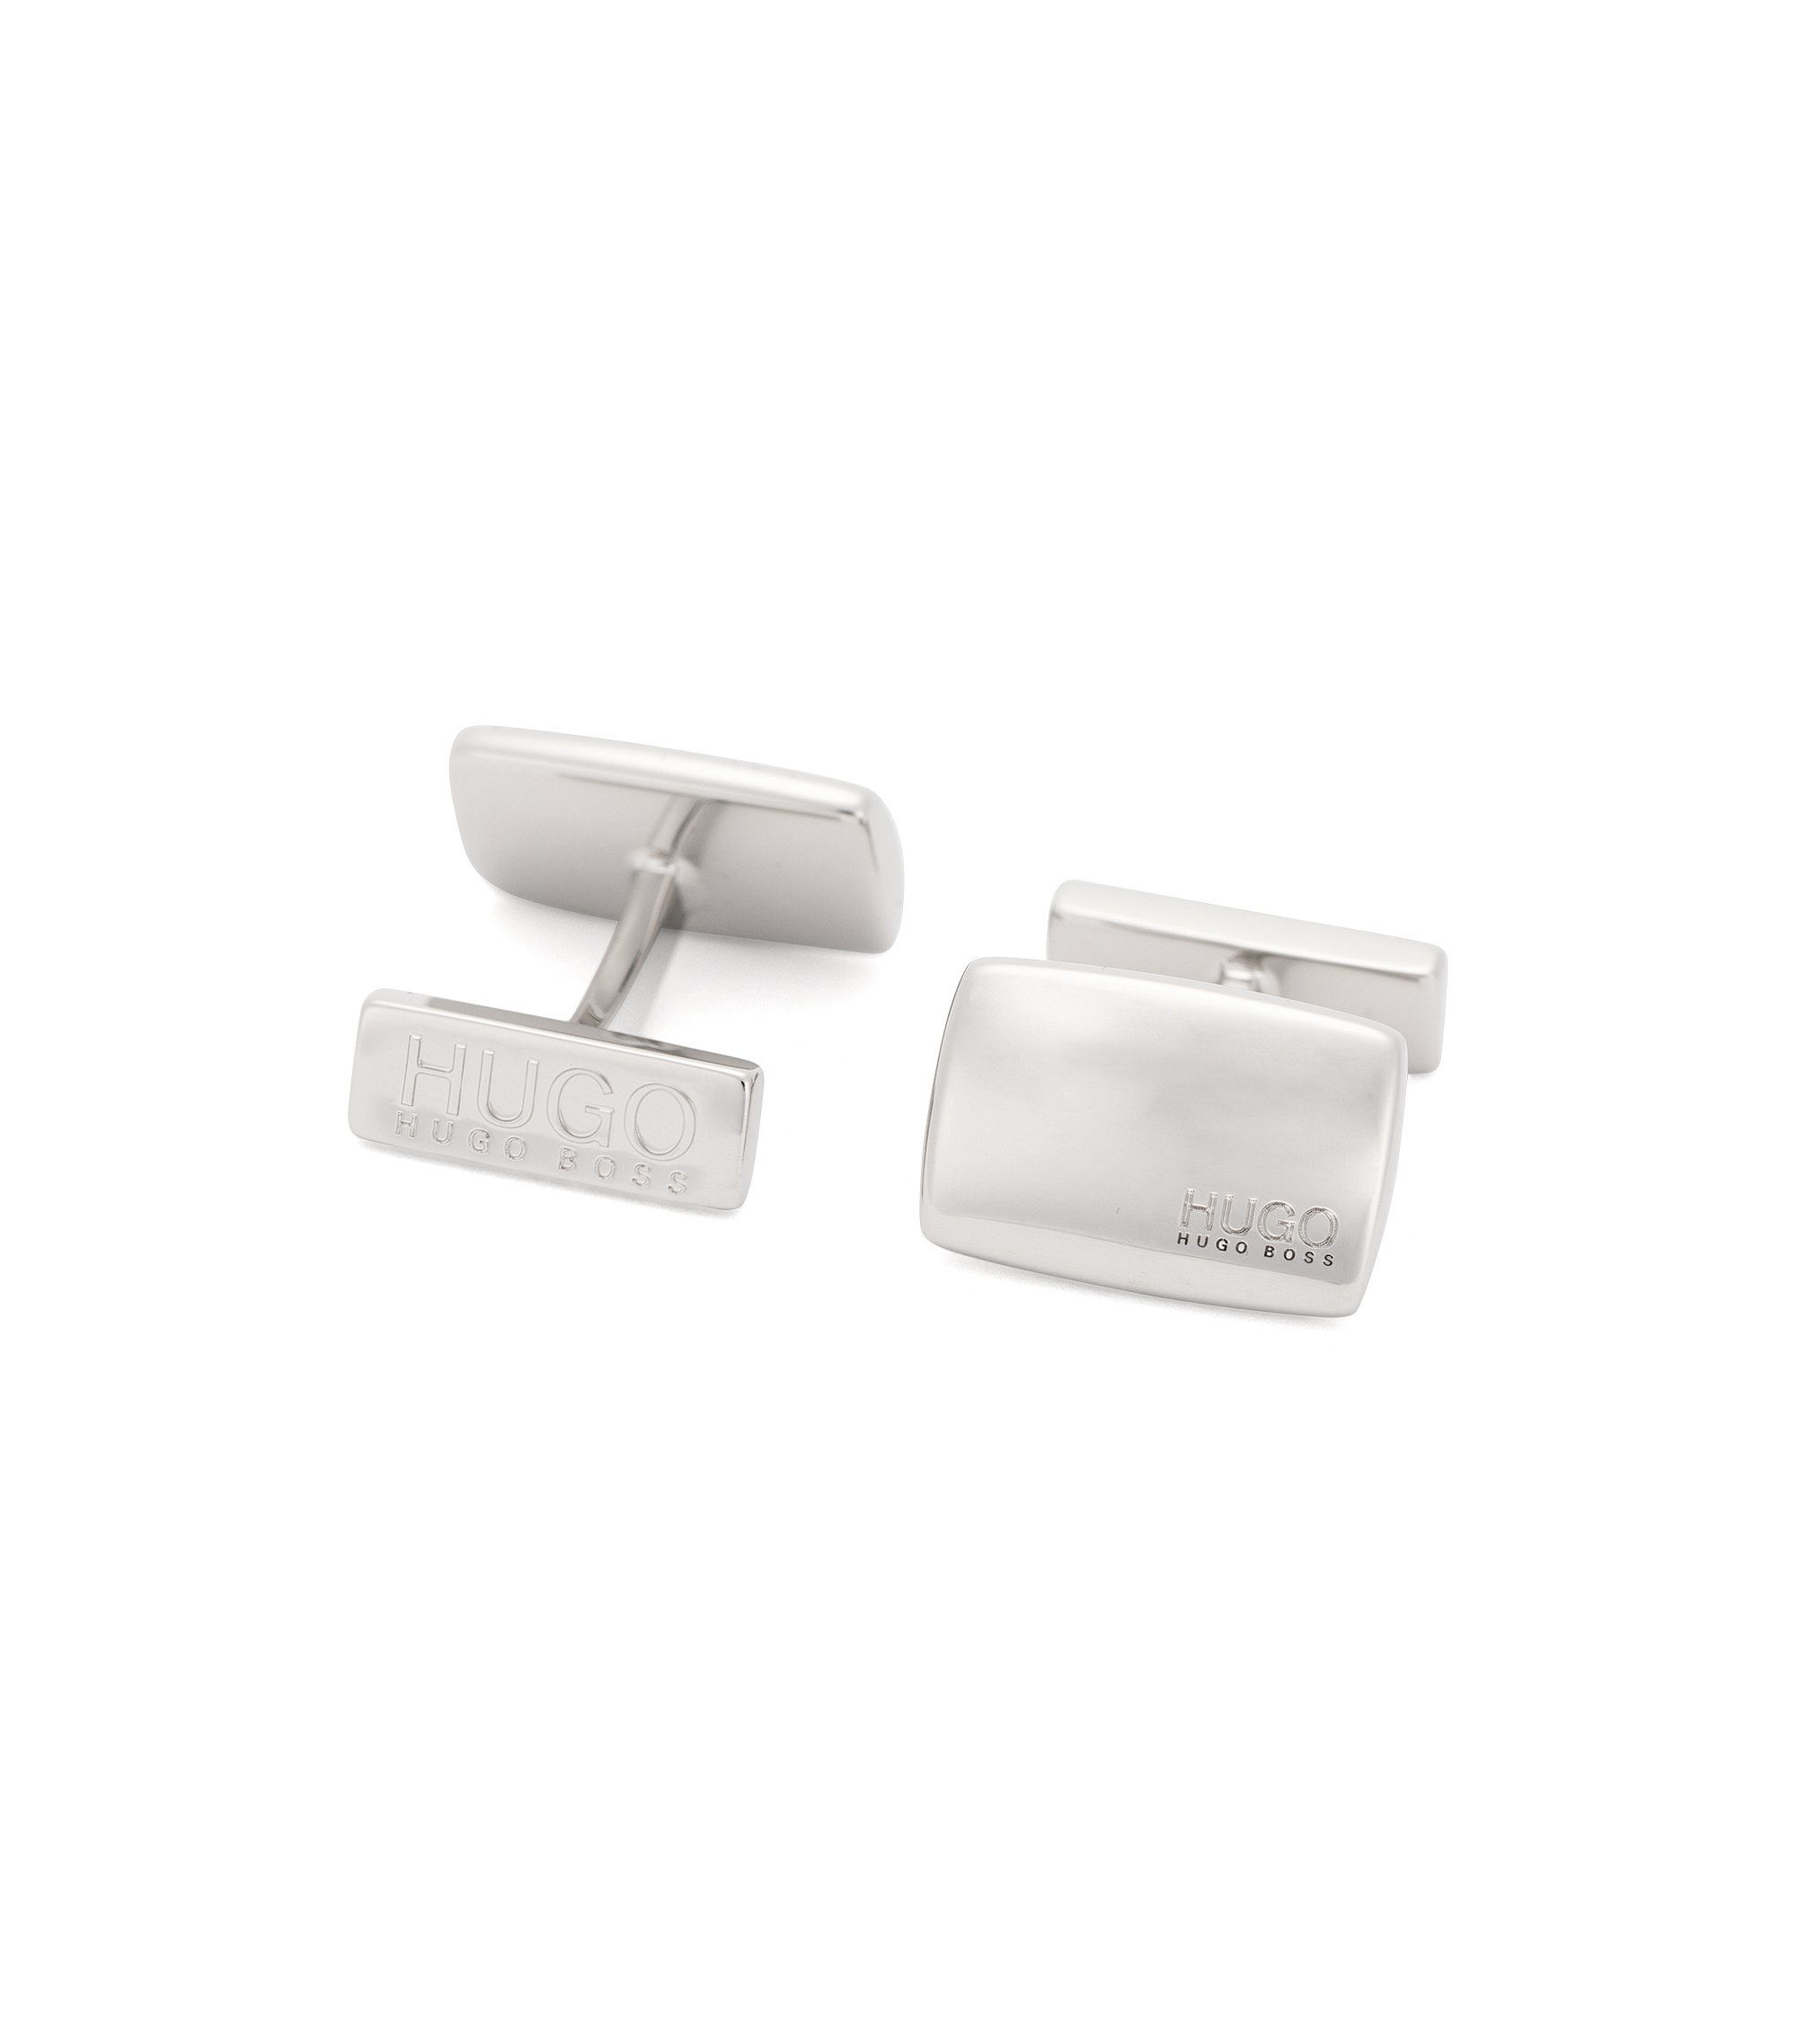 Rectangular cufflinks with fix fastening, Silver